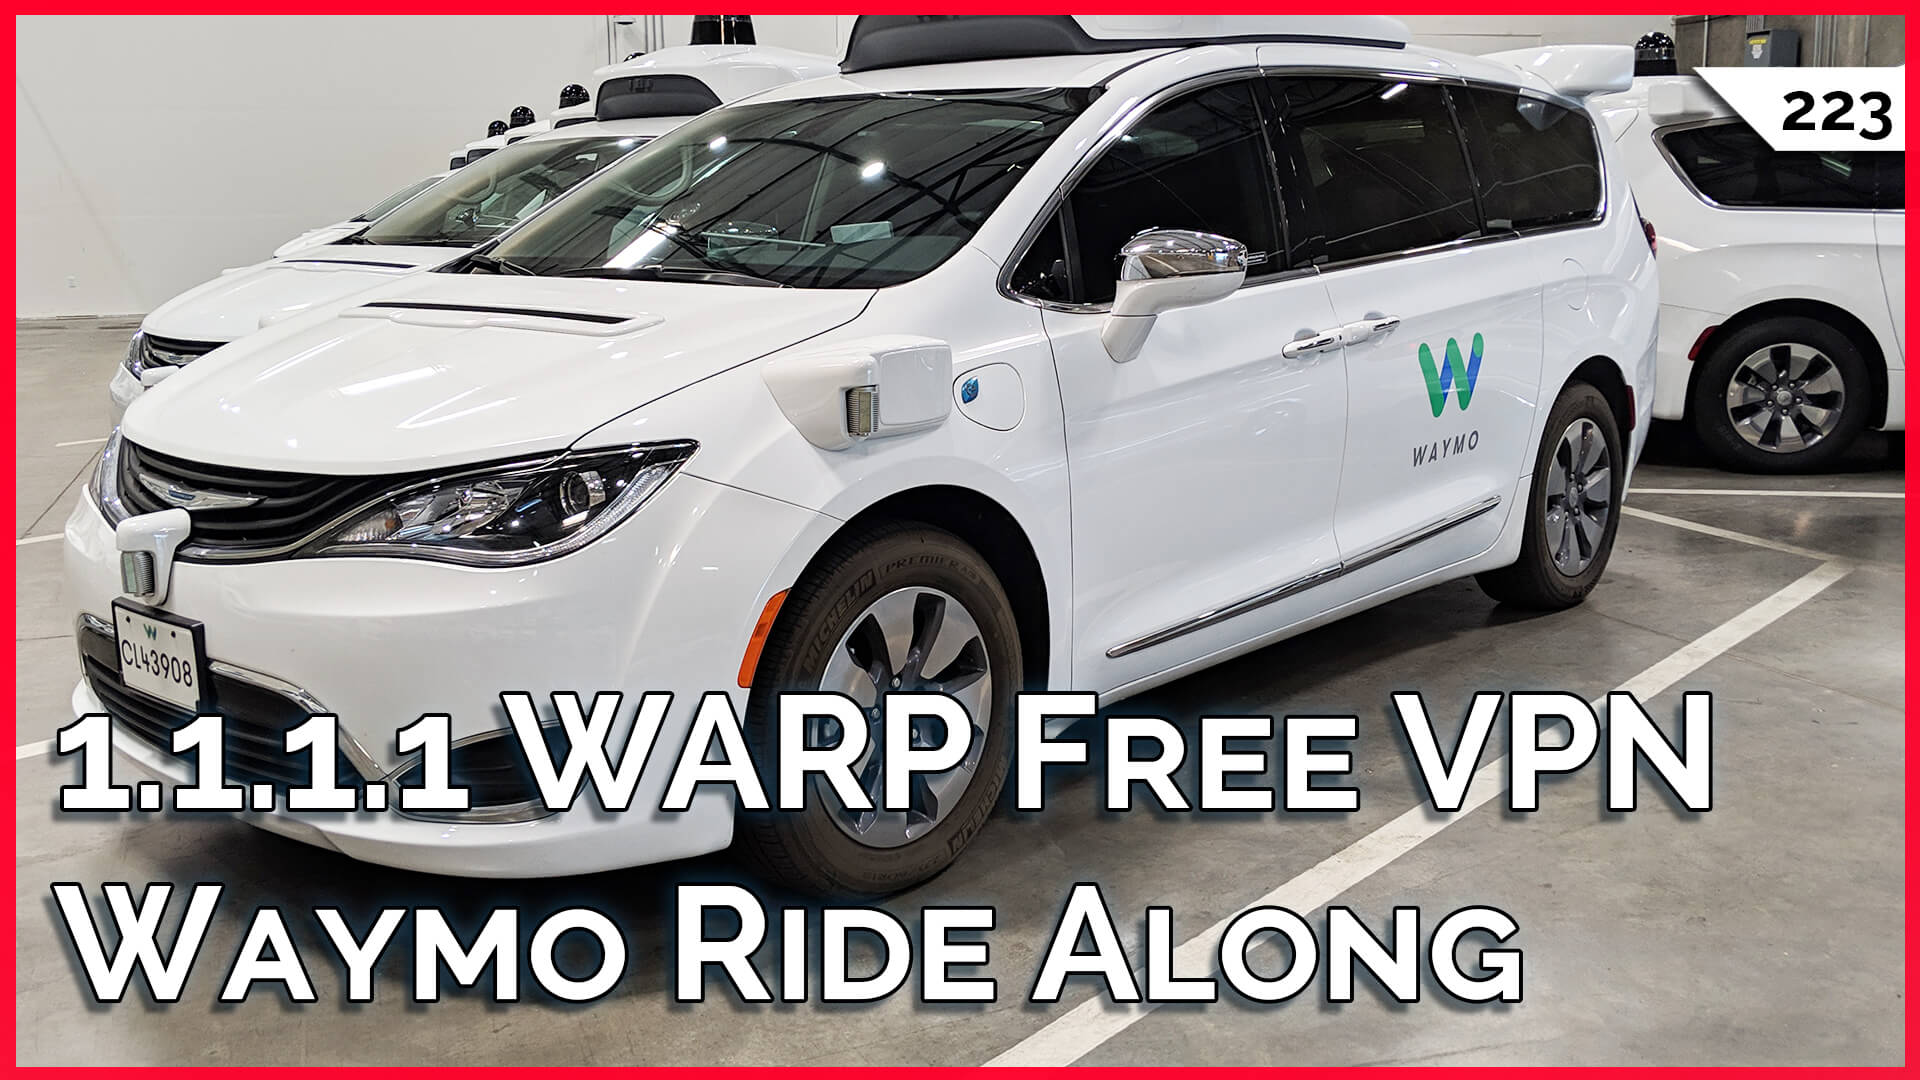 Free VPN: Cloudflare 1.1.1.1 Warp! Best Computer Power Supply, Ride In Waymo Self Driving Car! — TekThing 223